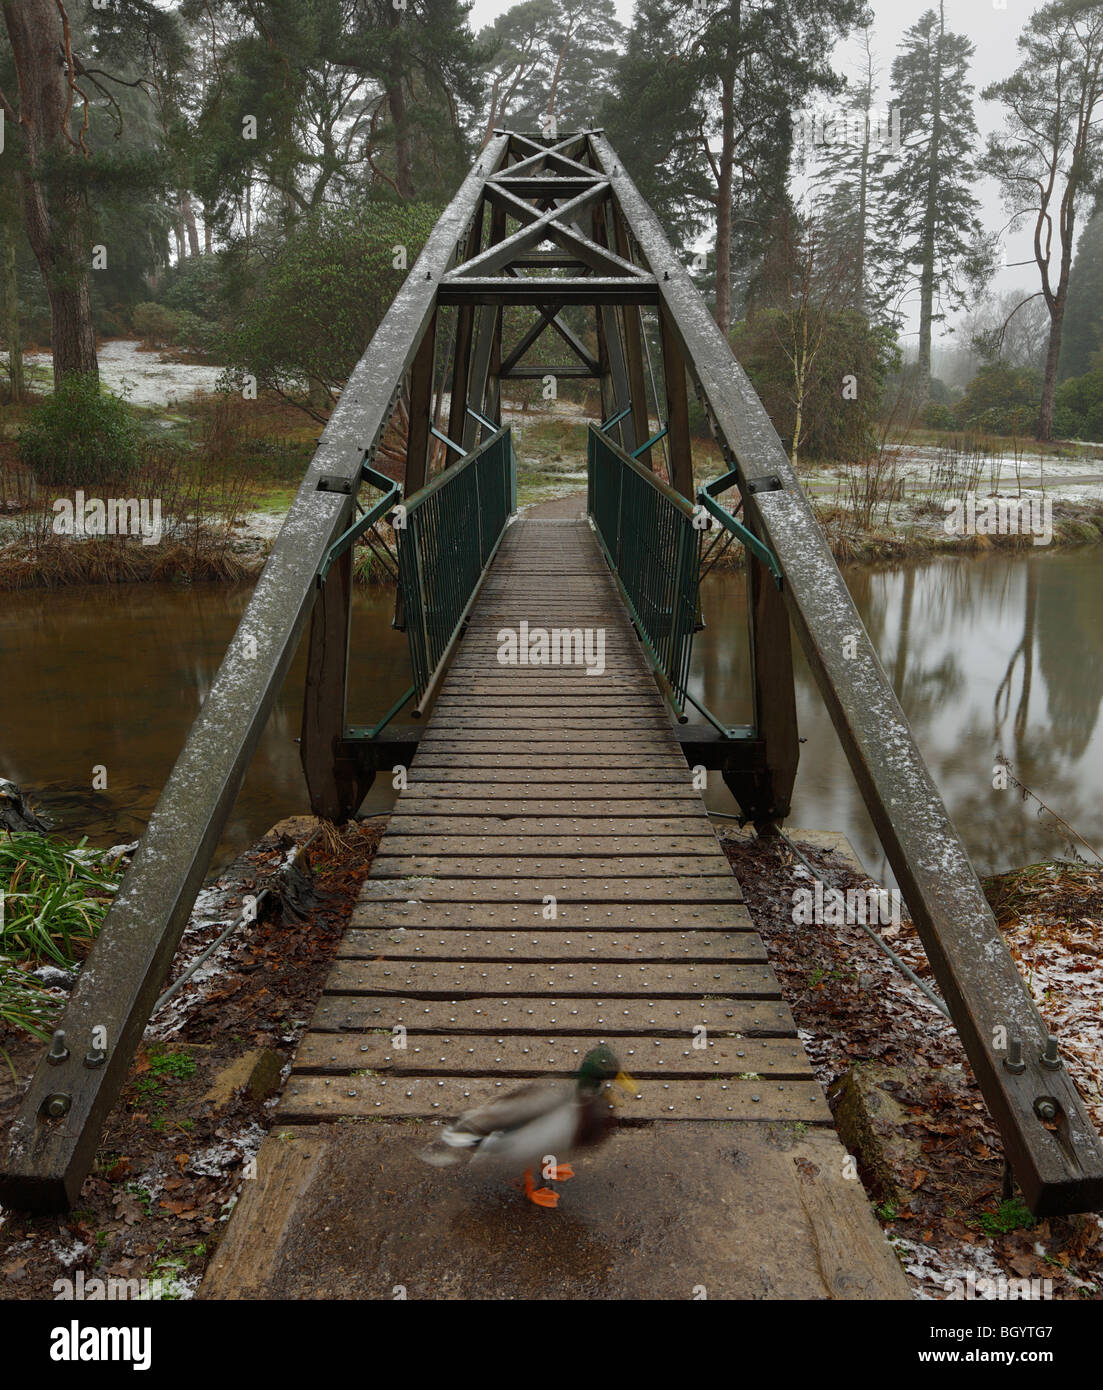 Bridge at Bedgebury National Pinetum. - Stock Image